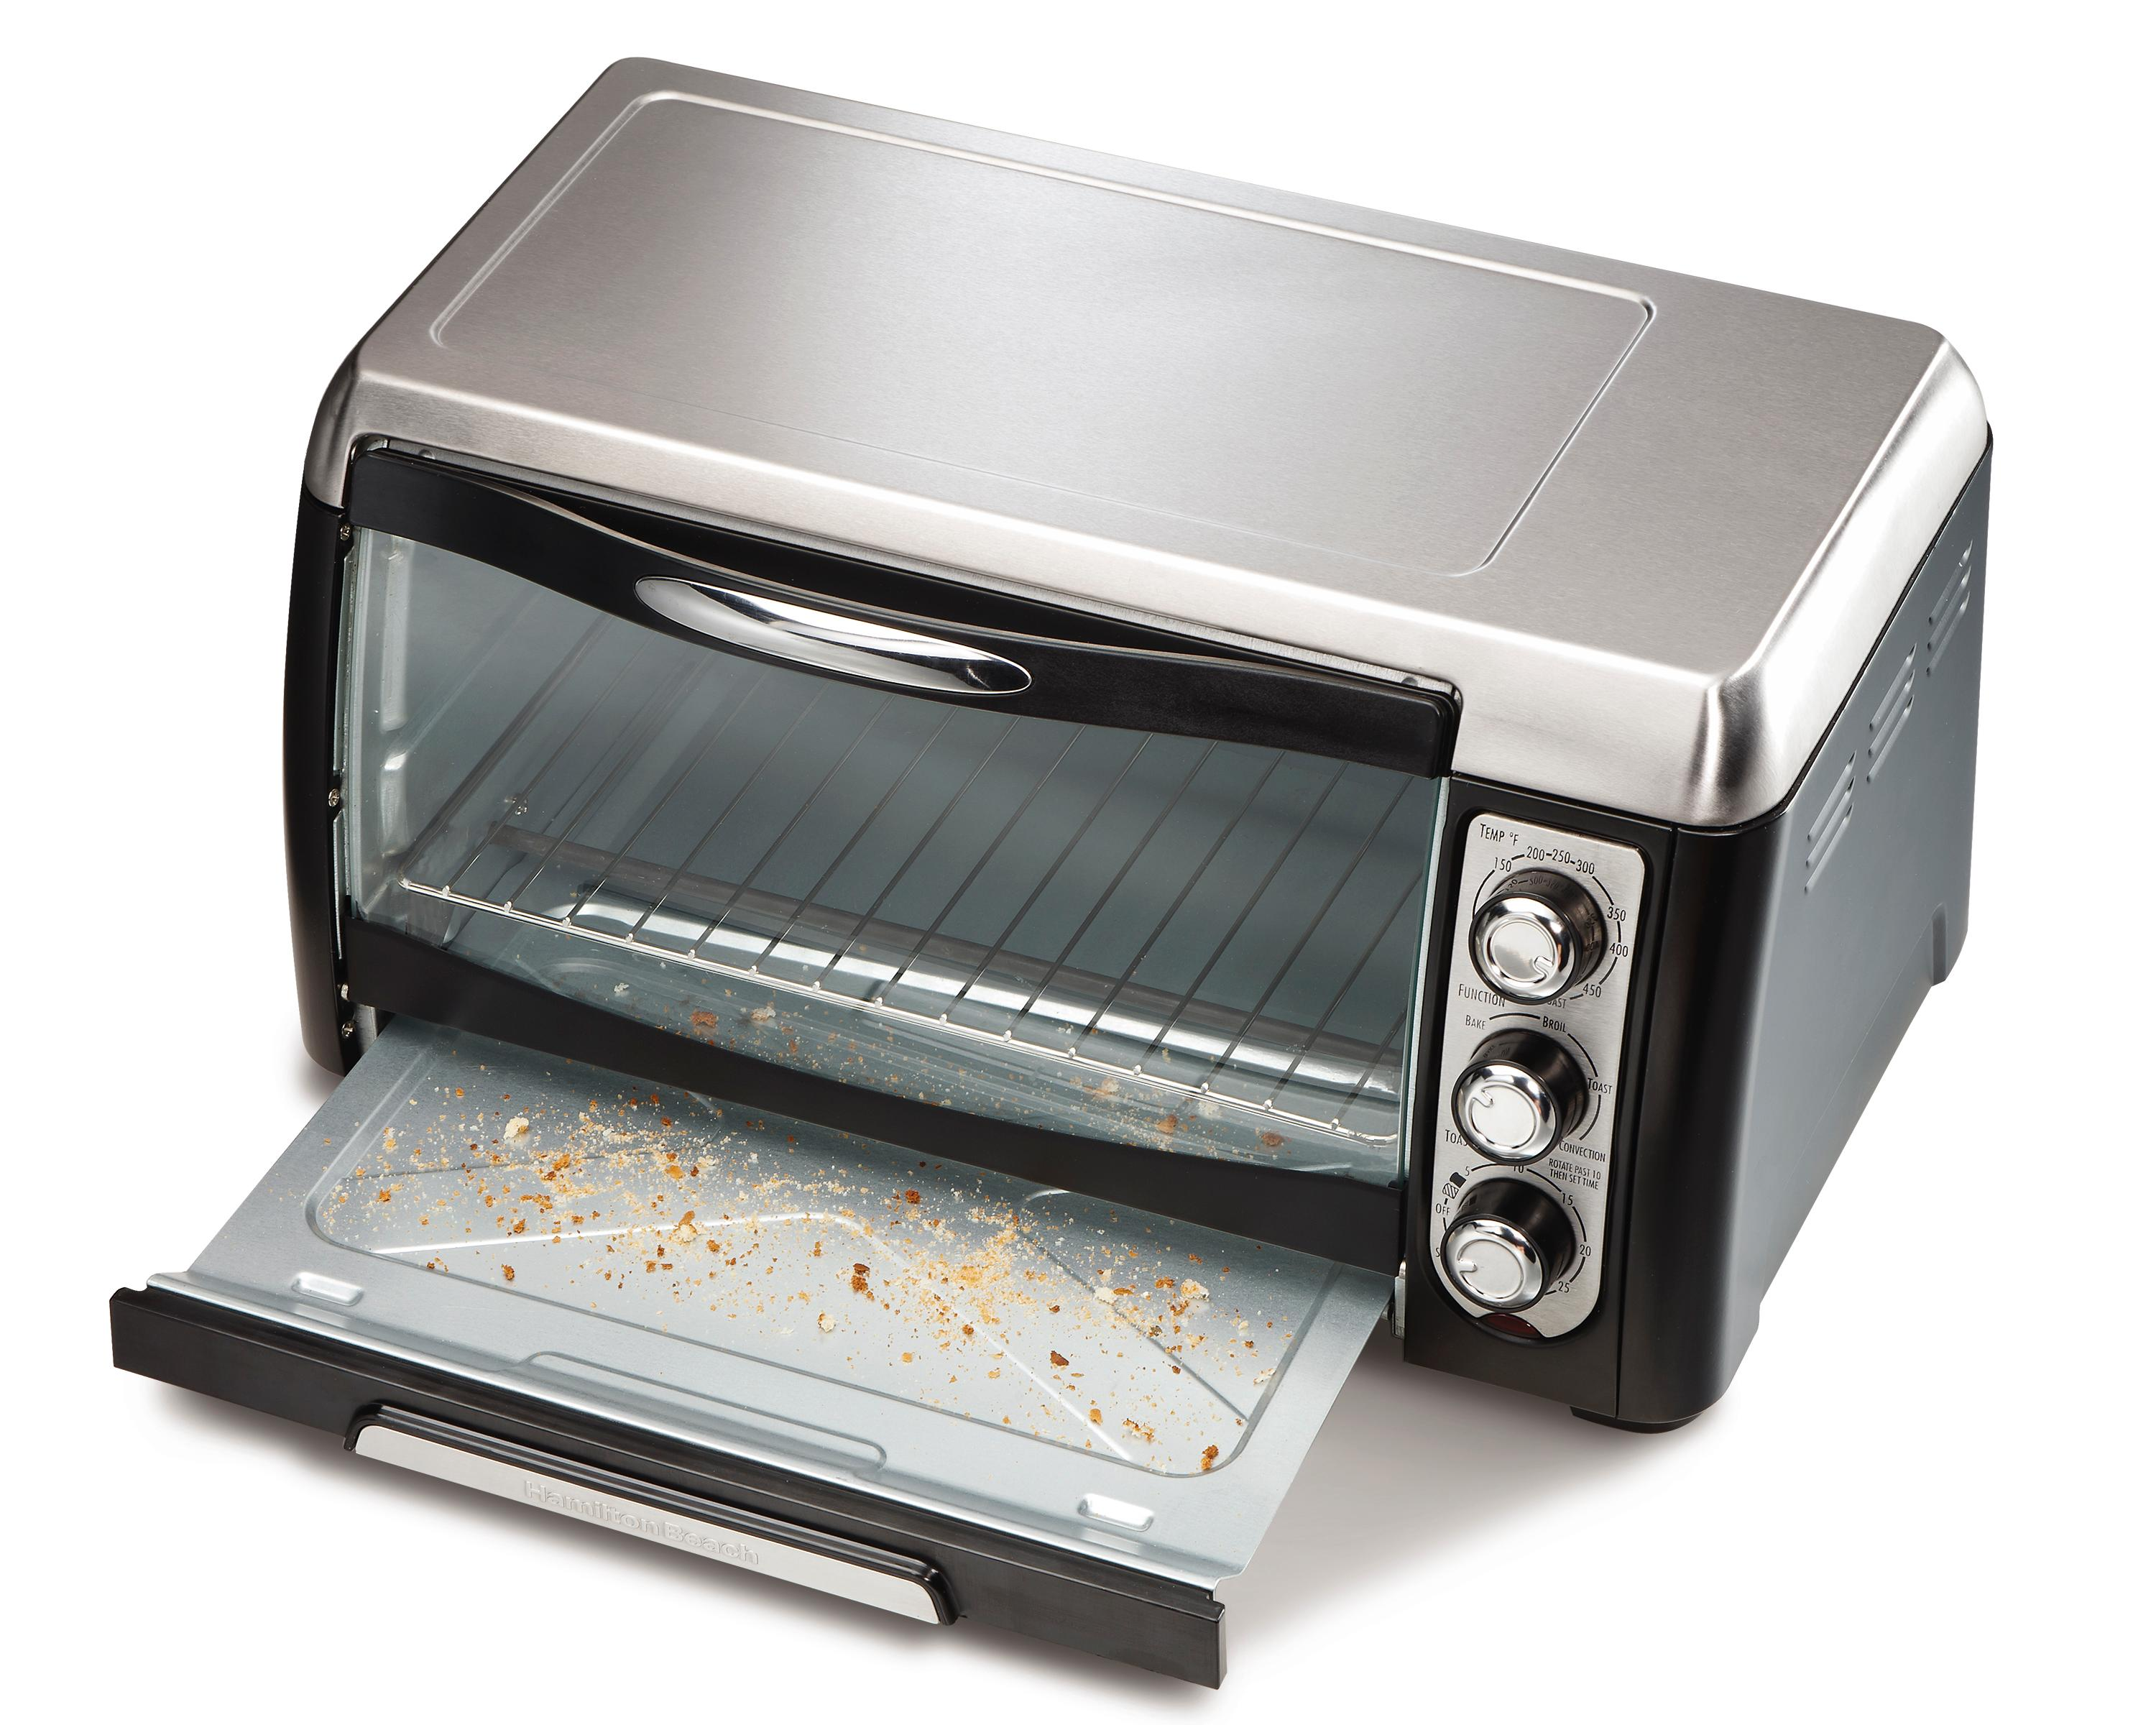 Countertop Oven Vs Conventional Oven : Conventional Oven vs Toaster Oven Toaster Oven Broiler